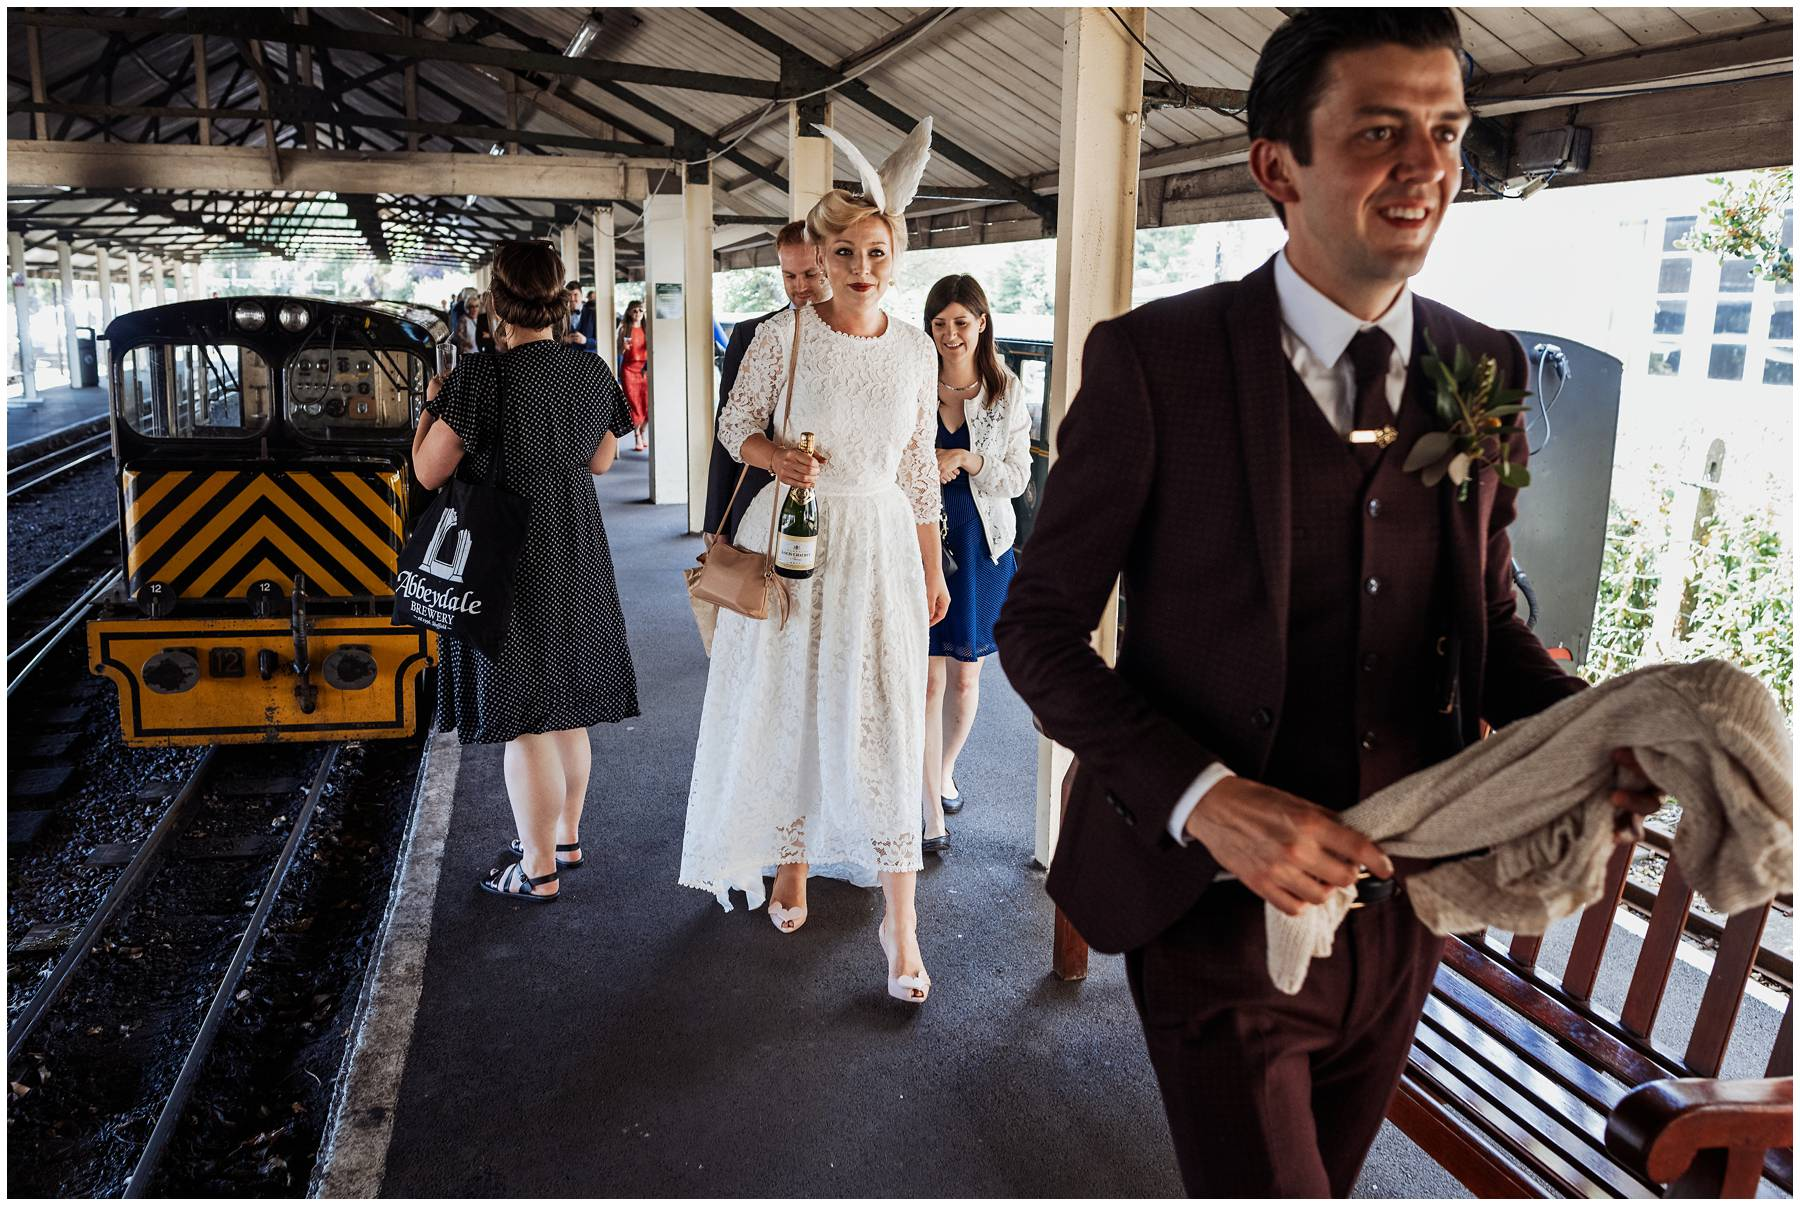 Reportage Wedding Photography on a miniature train